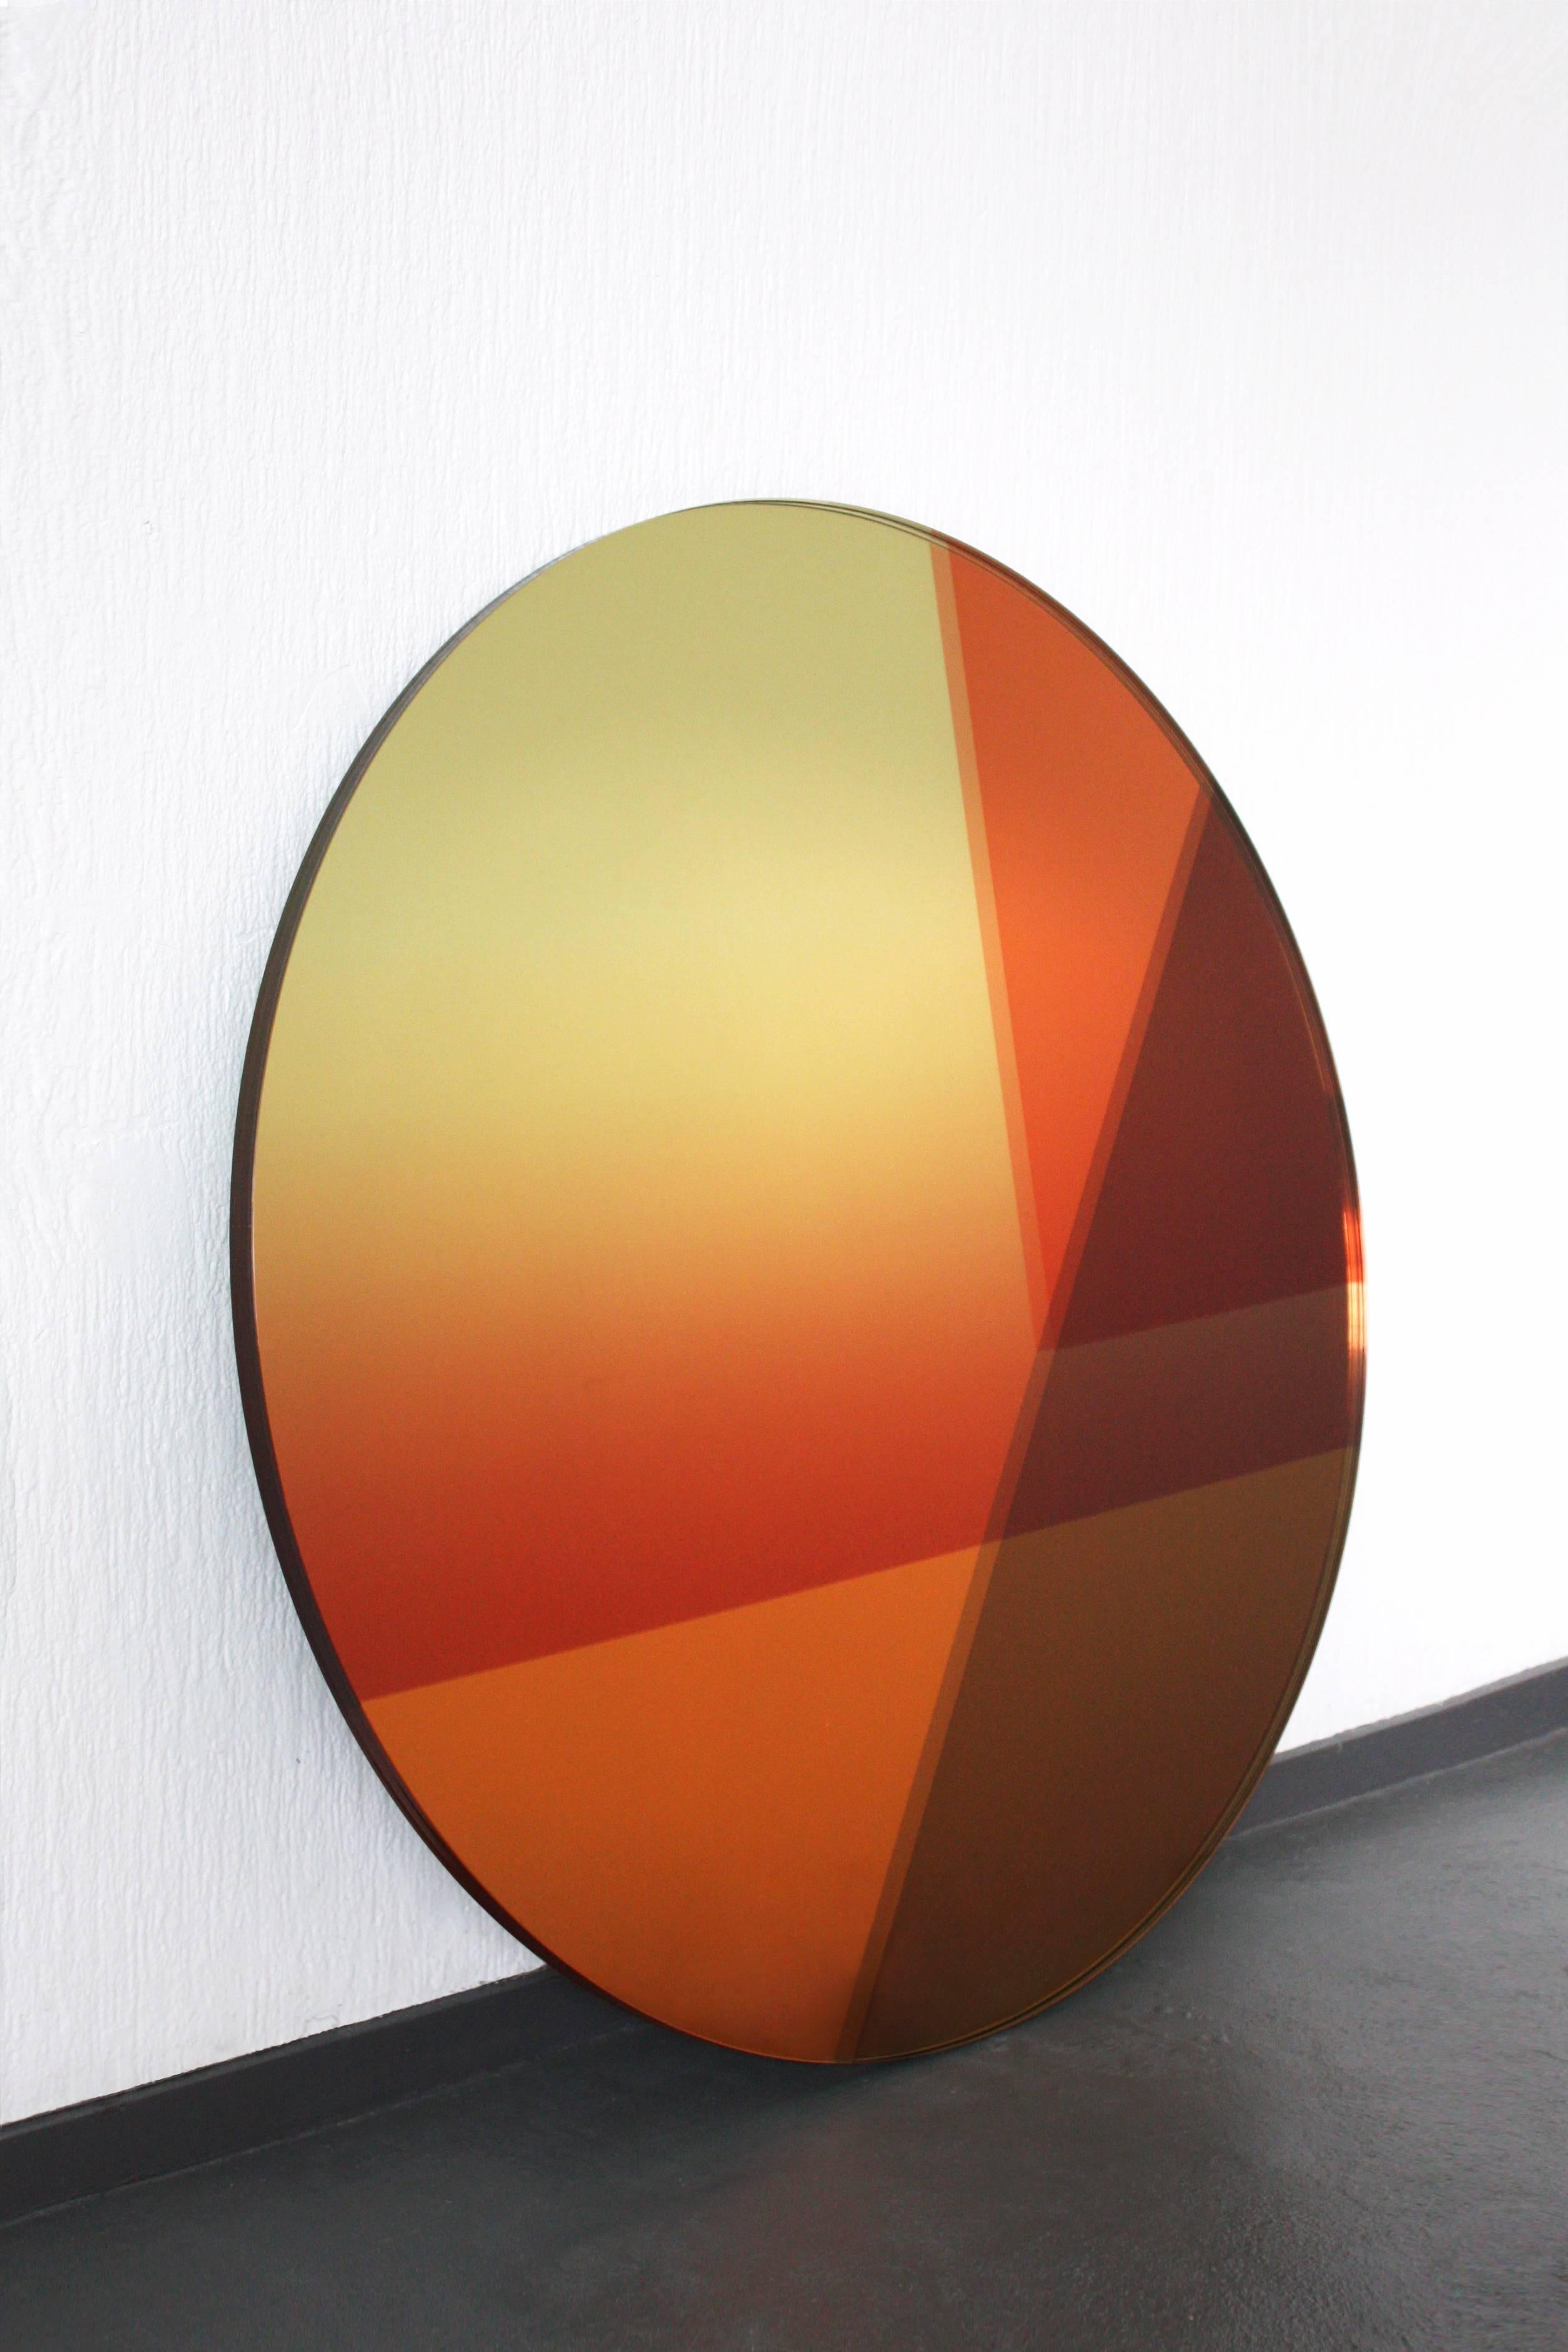 Seeing Glass Big Round Mirror, Small (77 cm) For Sale at 1stdibs